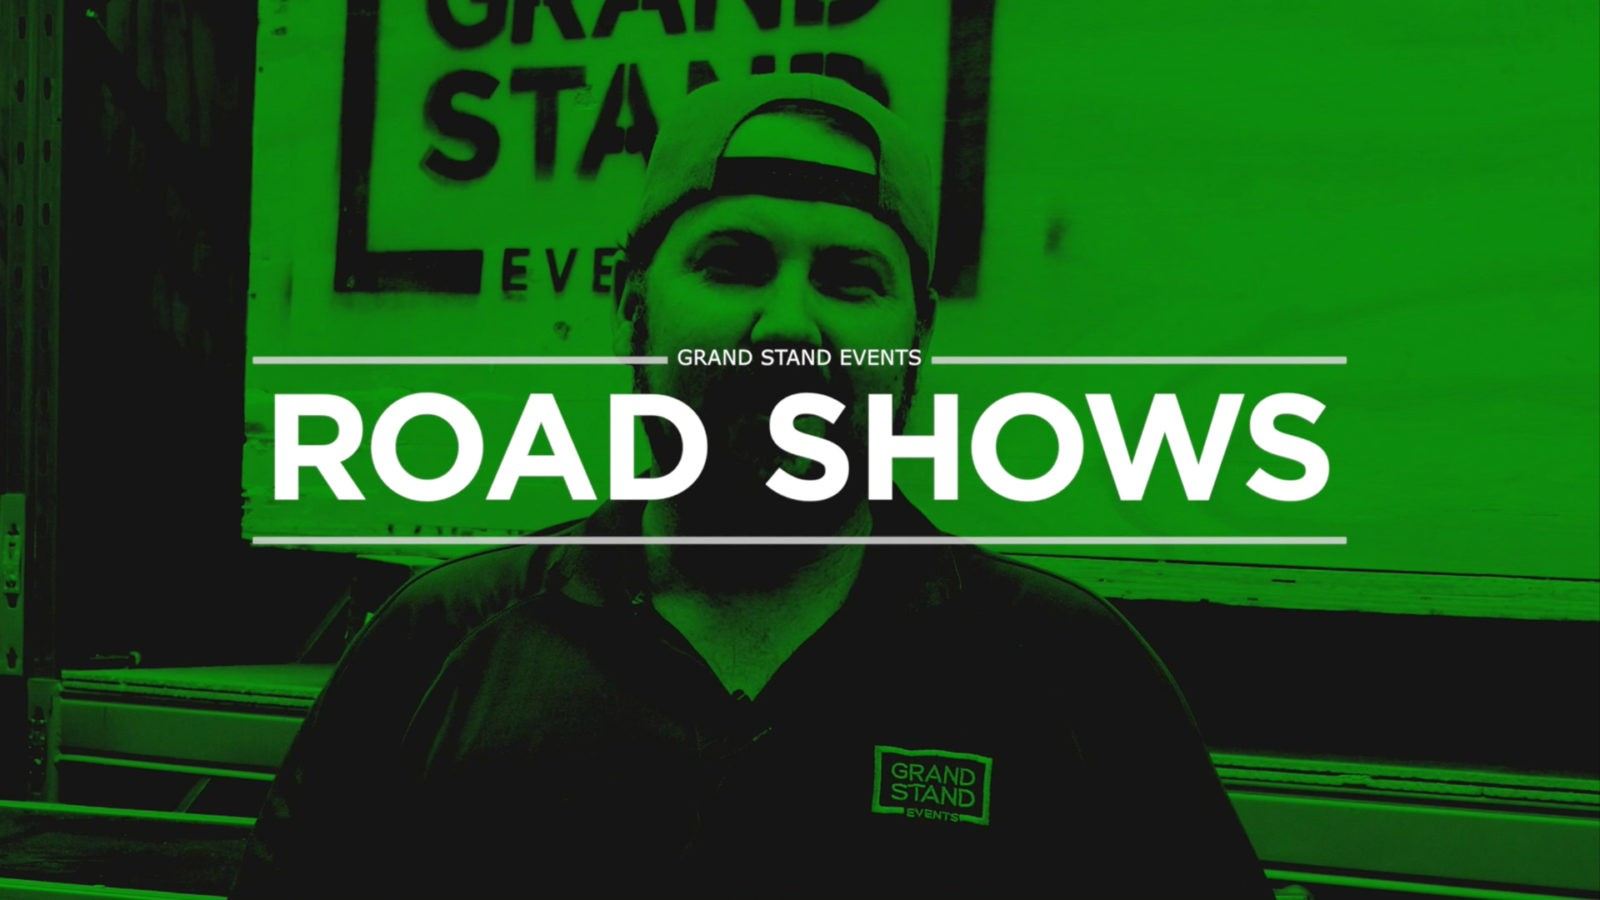 Road shows and why taking your brand on the road is important.